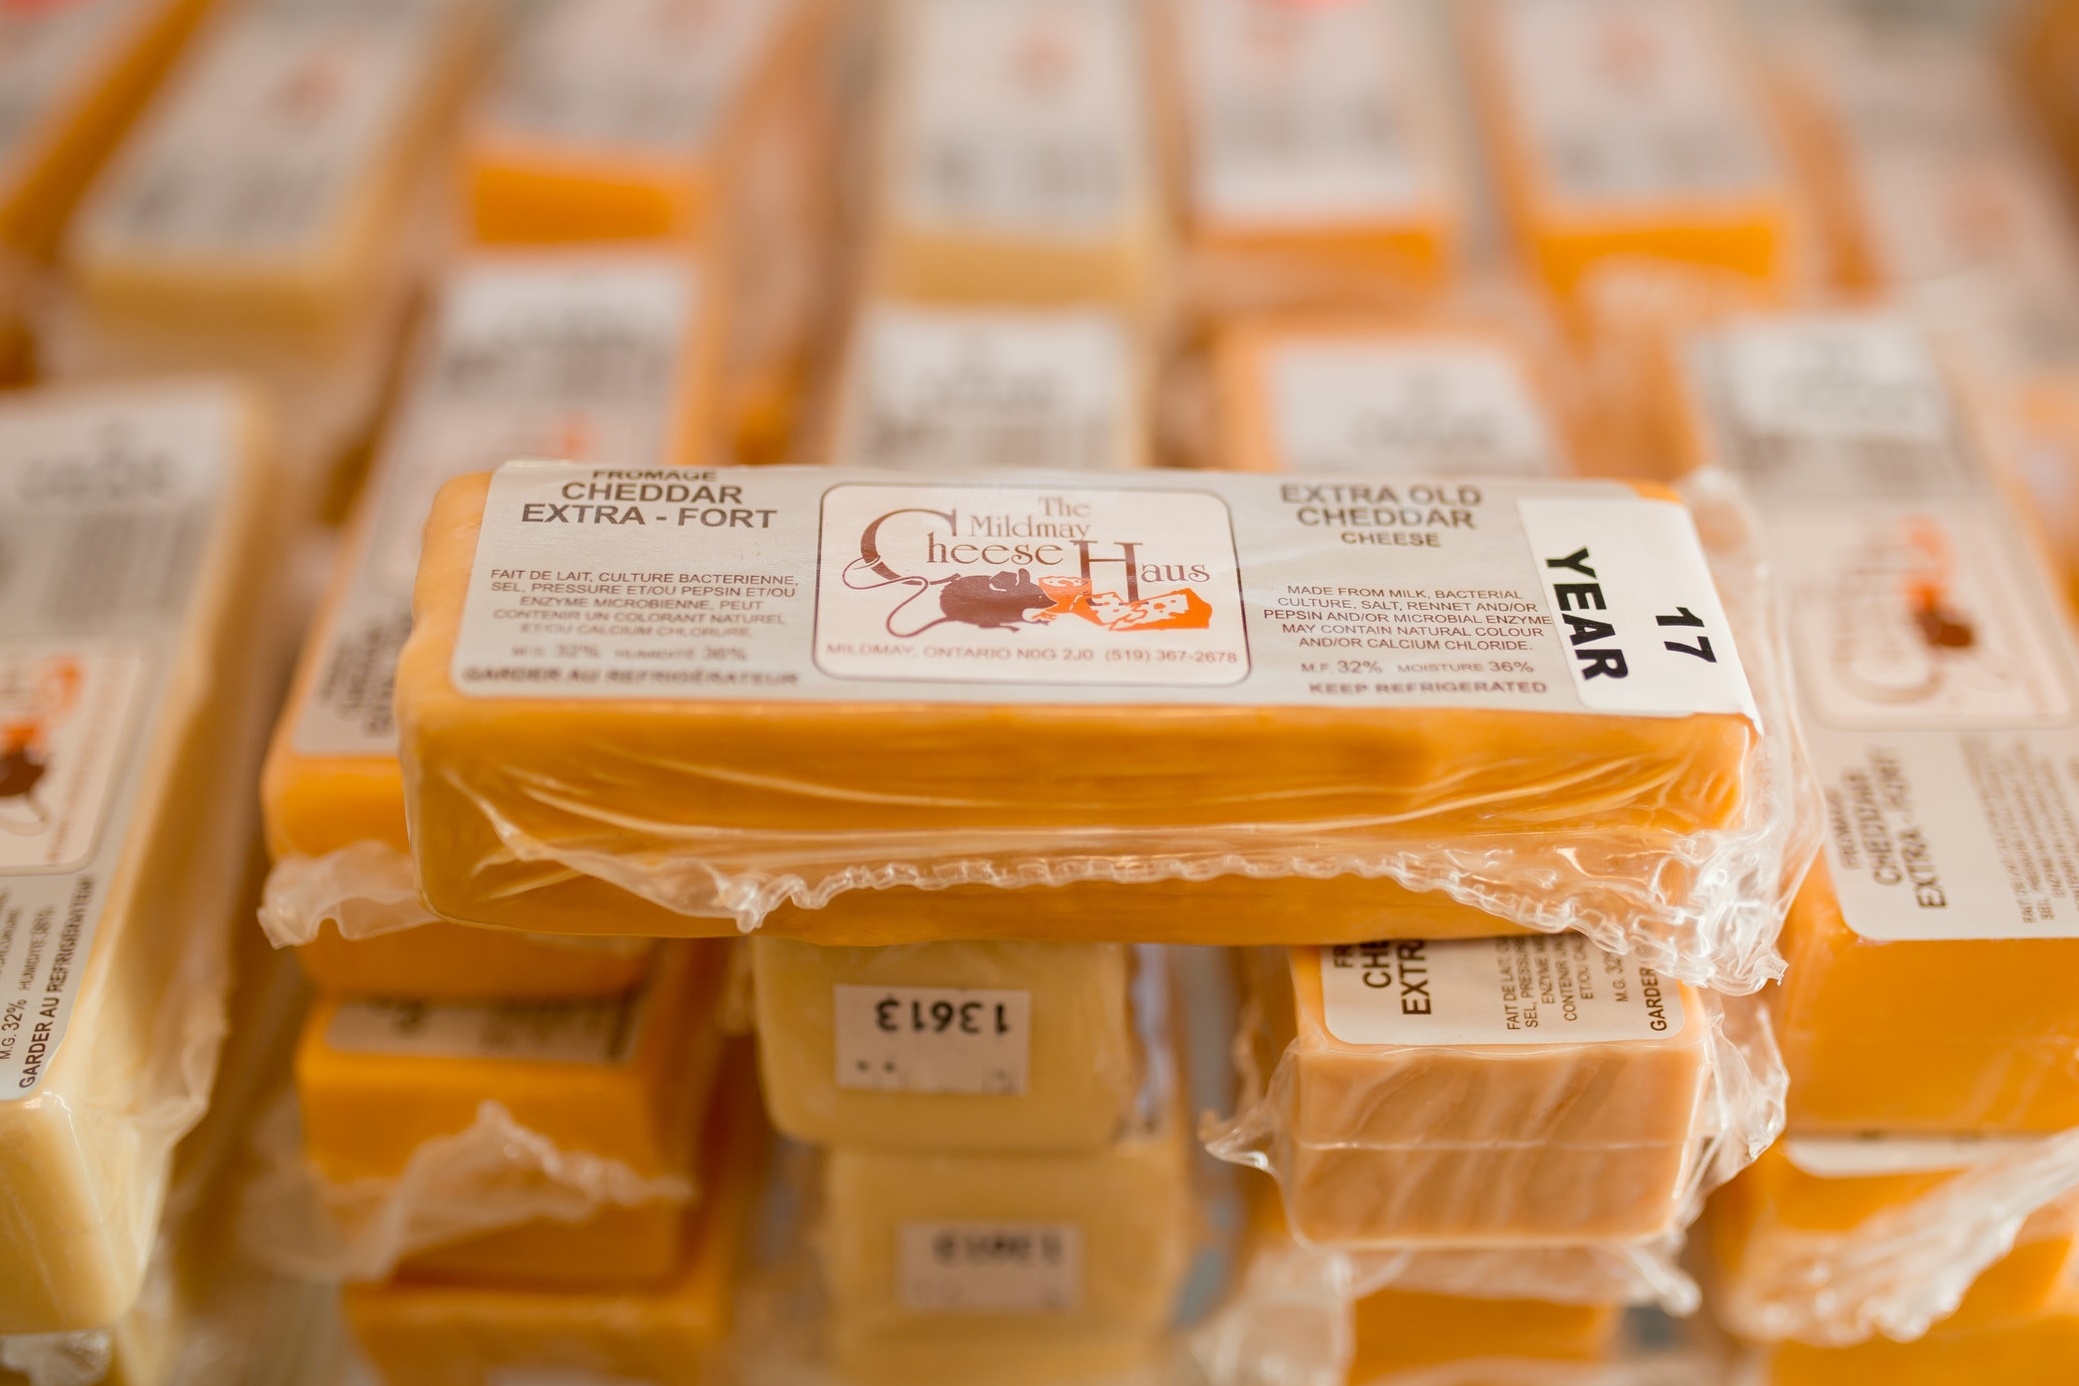 People come from far and wide to taste the aged cheddar at  The   Mildmay Cheese Haus